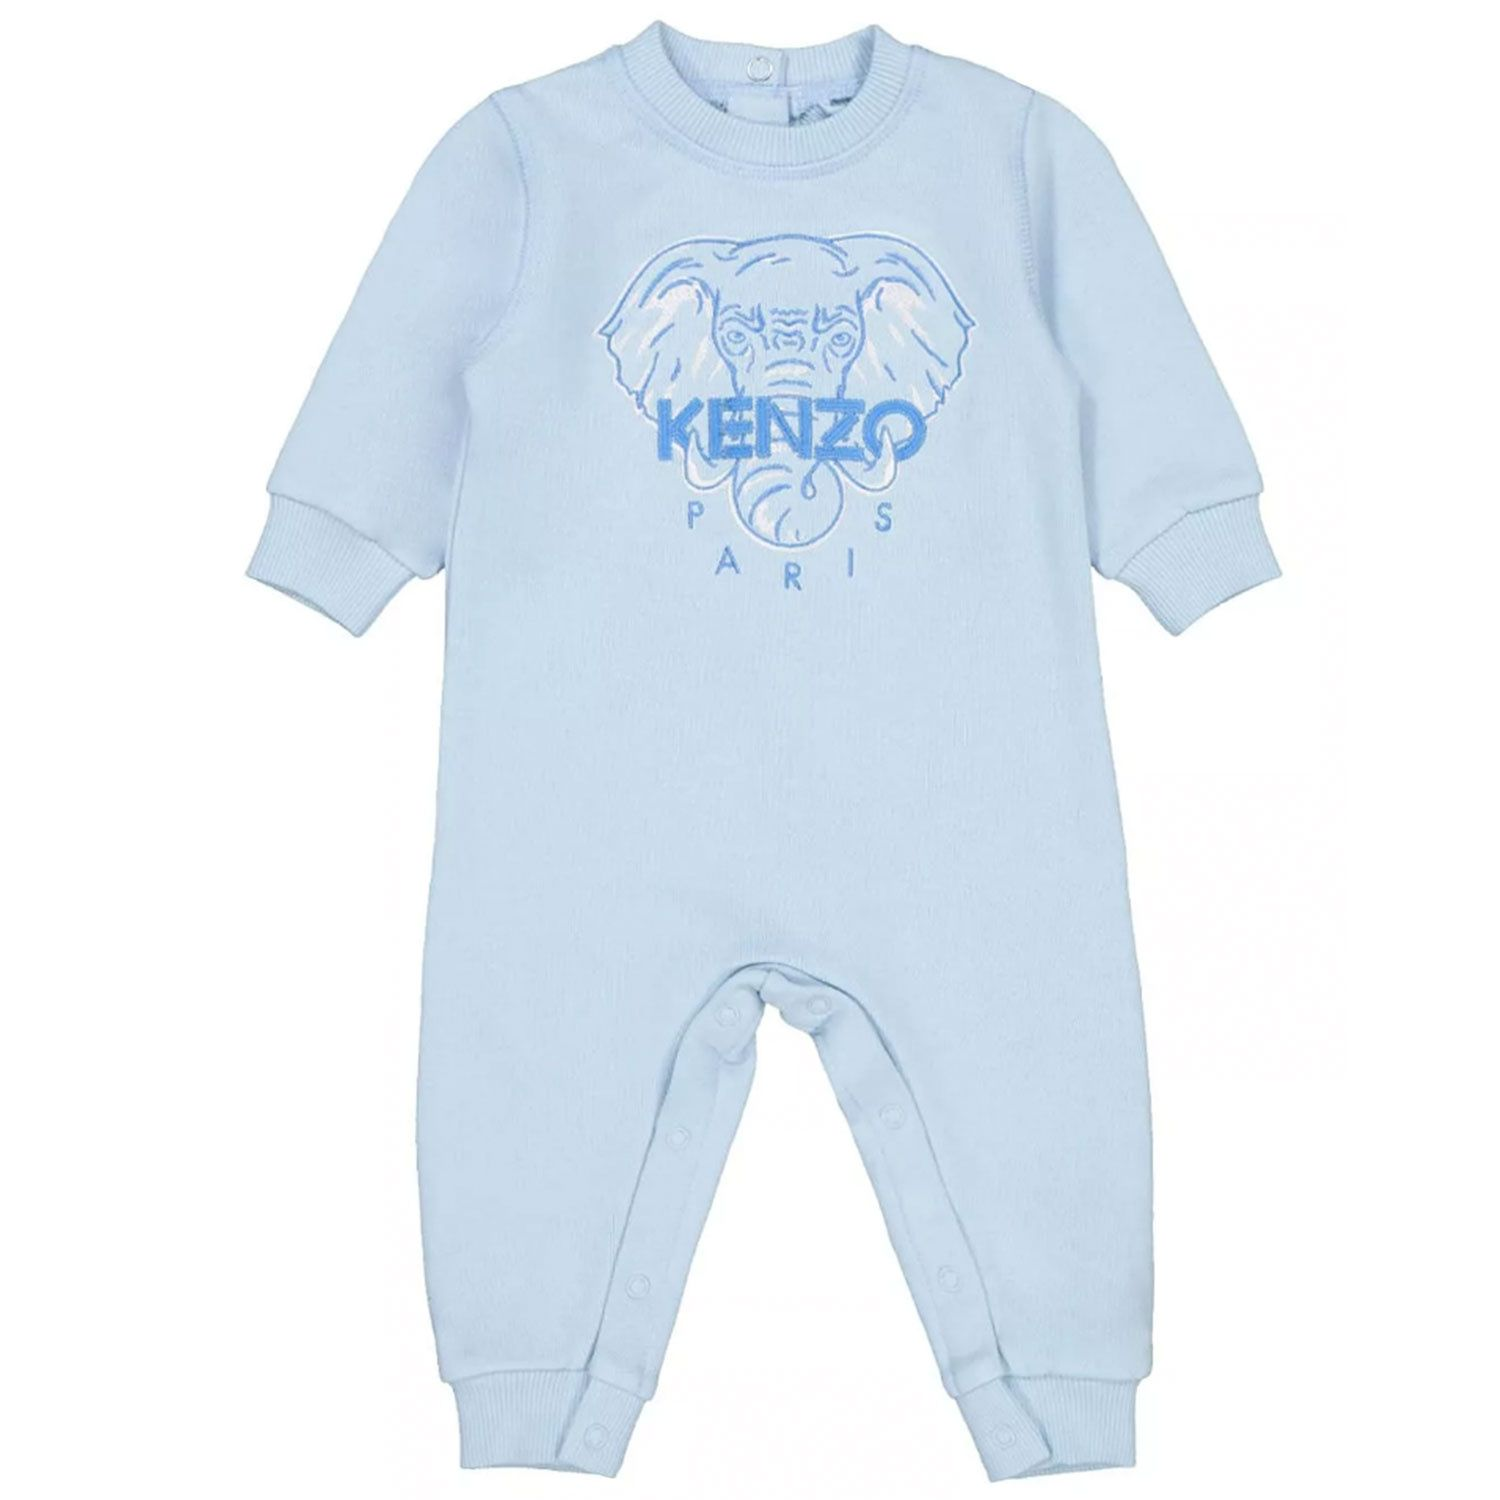 Picture of Kenzo K94019 baby playsuit light blue